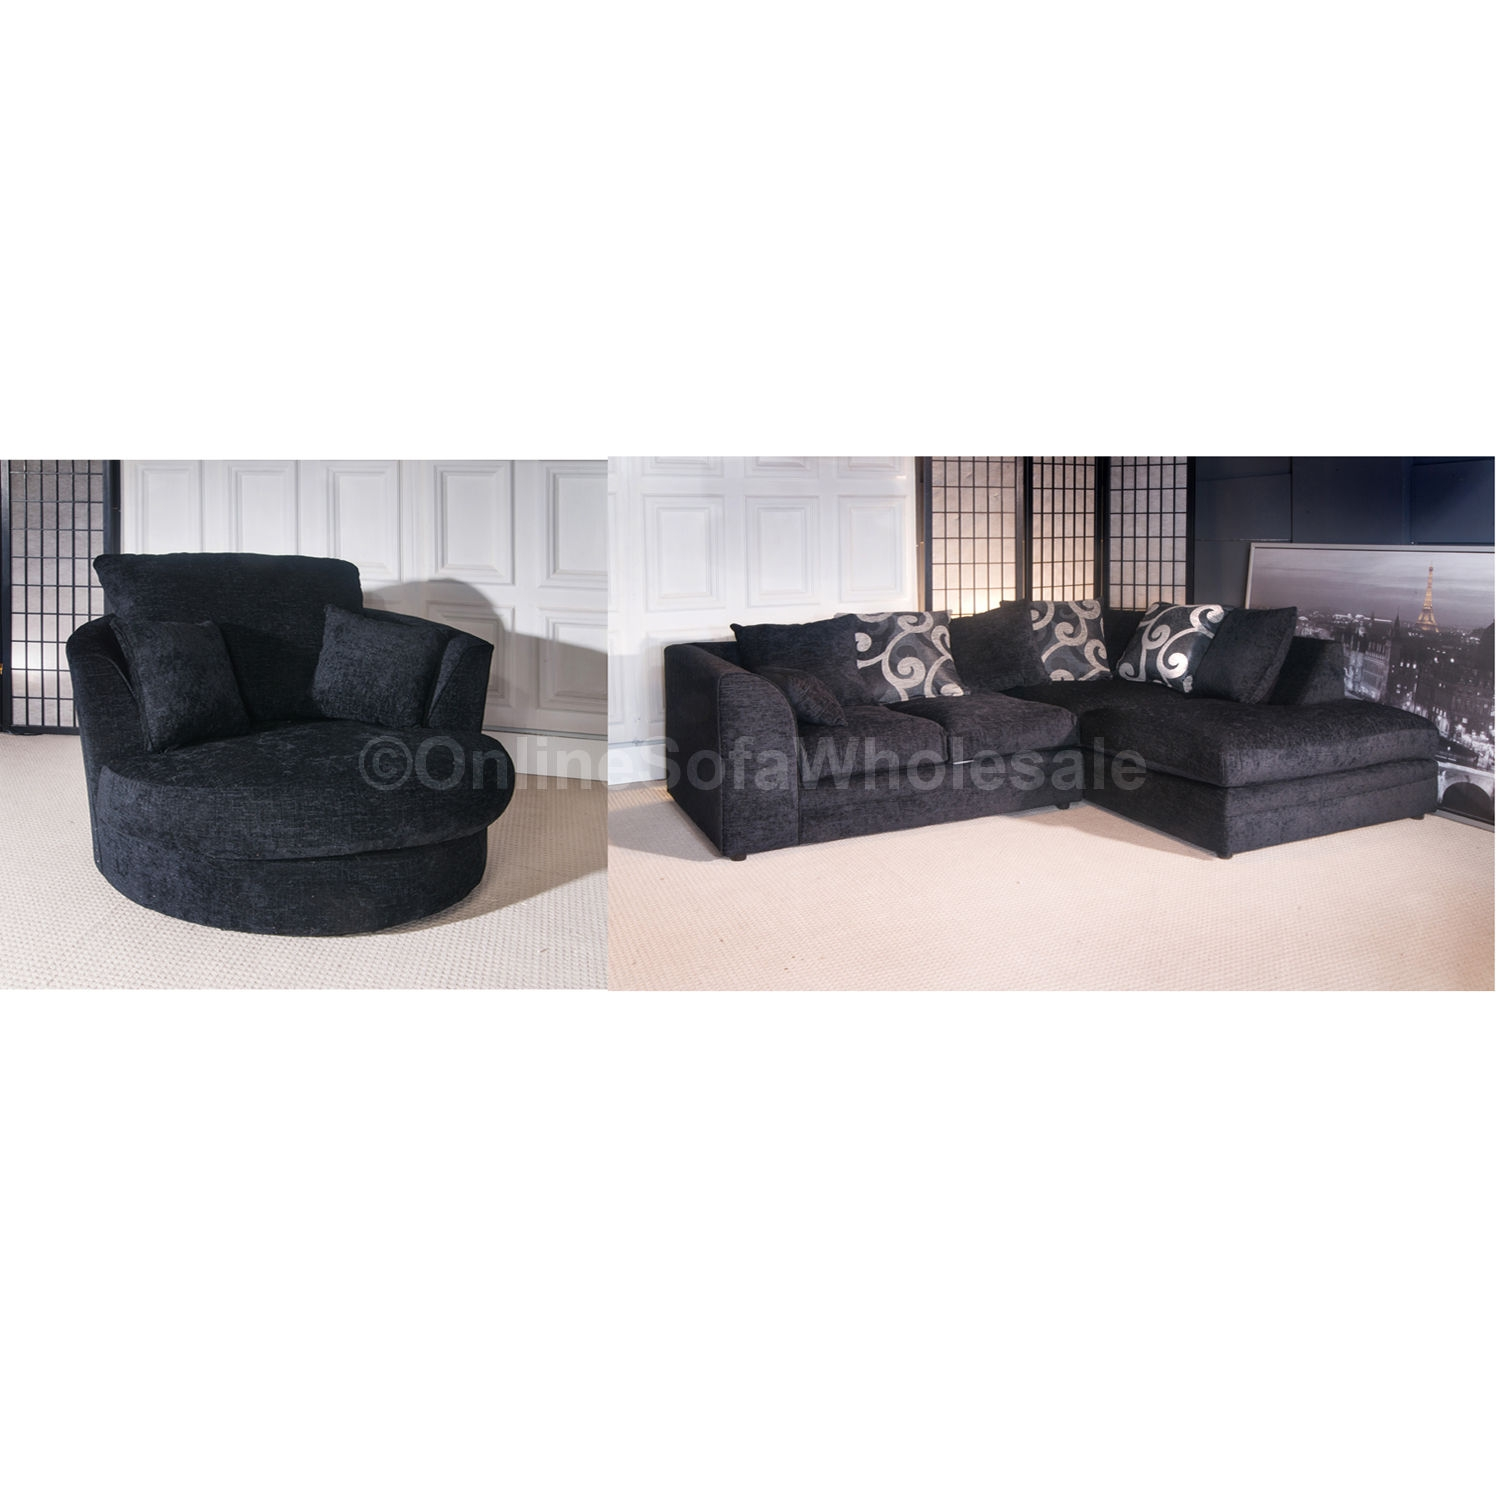 56 Swivel Sofa Chair Seater Sofa And Swivel Chair Dfs In Cardiff Within Corner Sofa And Swivel Chairs (View 6 of 15)